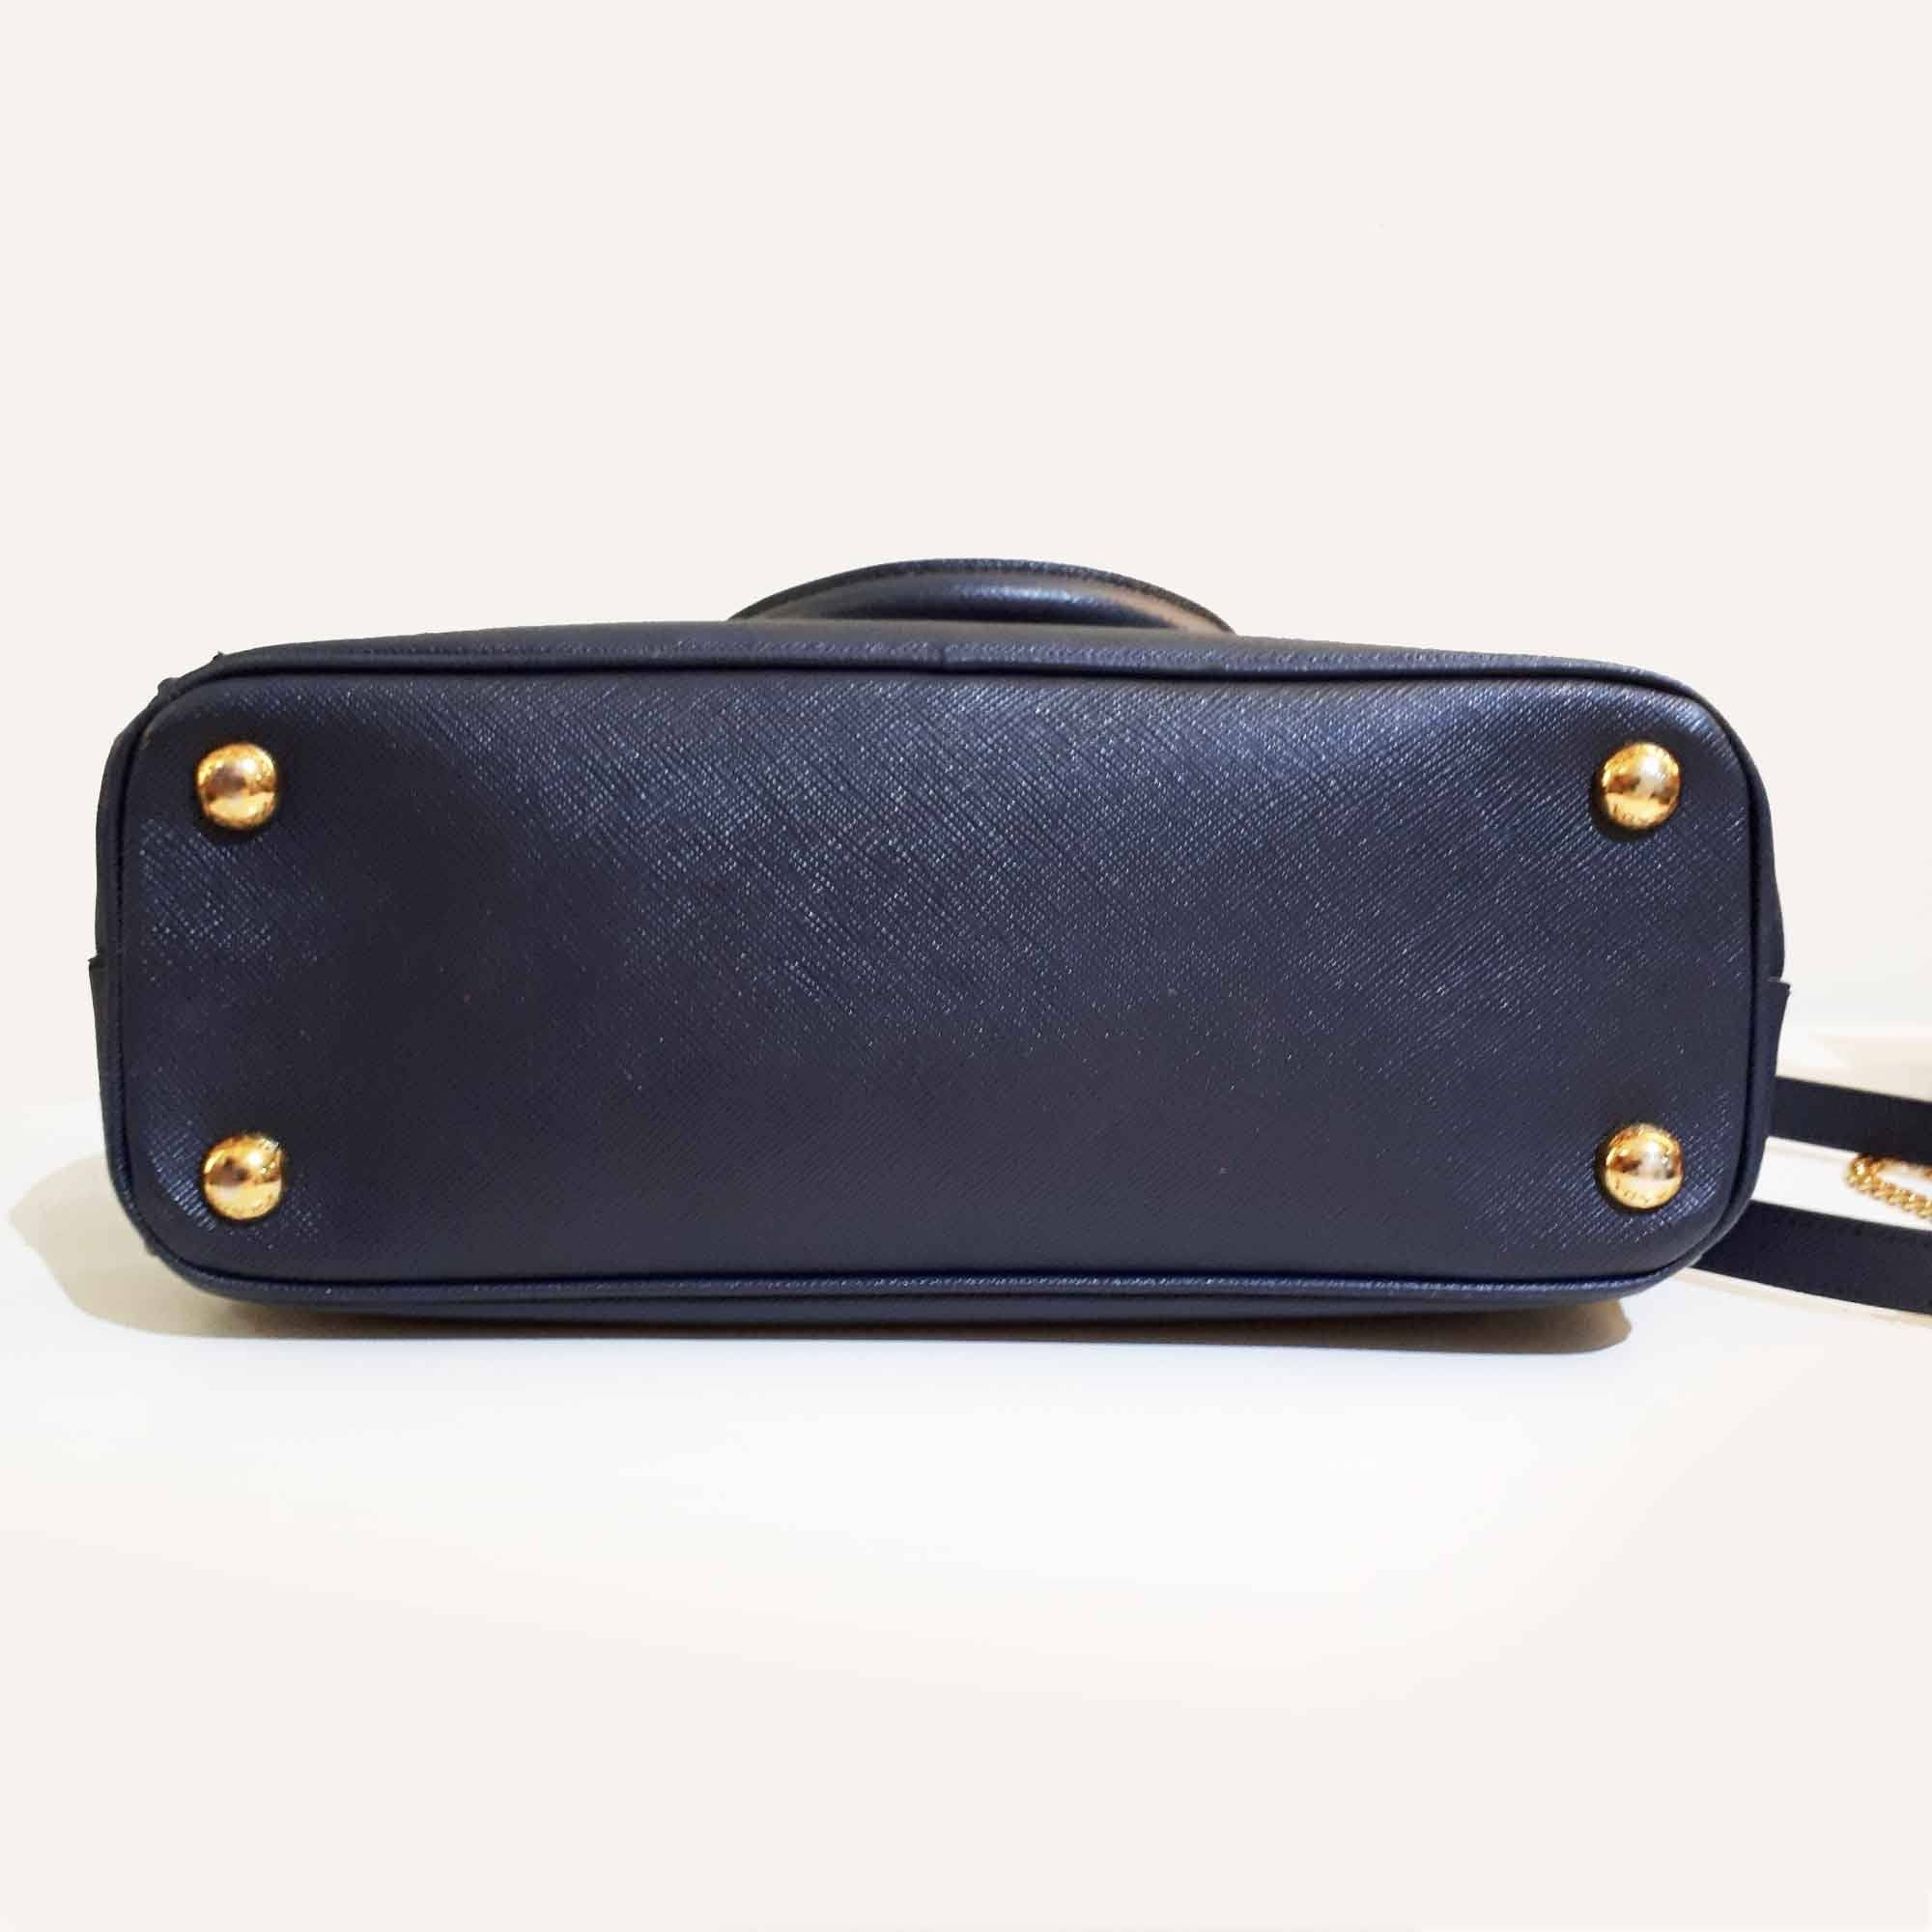 Prada Navy Saffiano Lux Leather Double Zip Tote